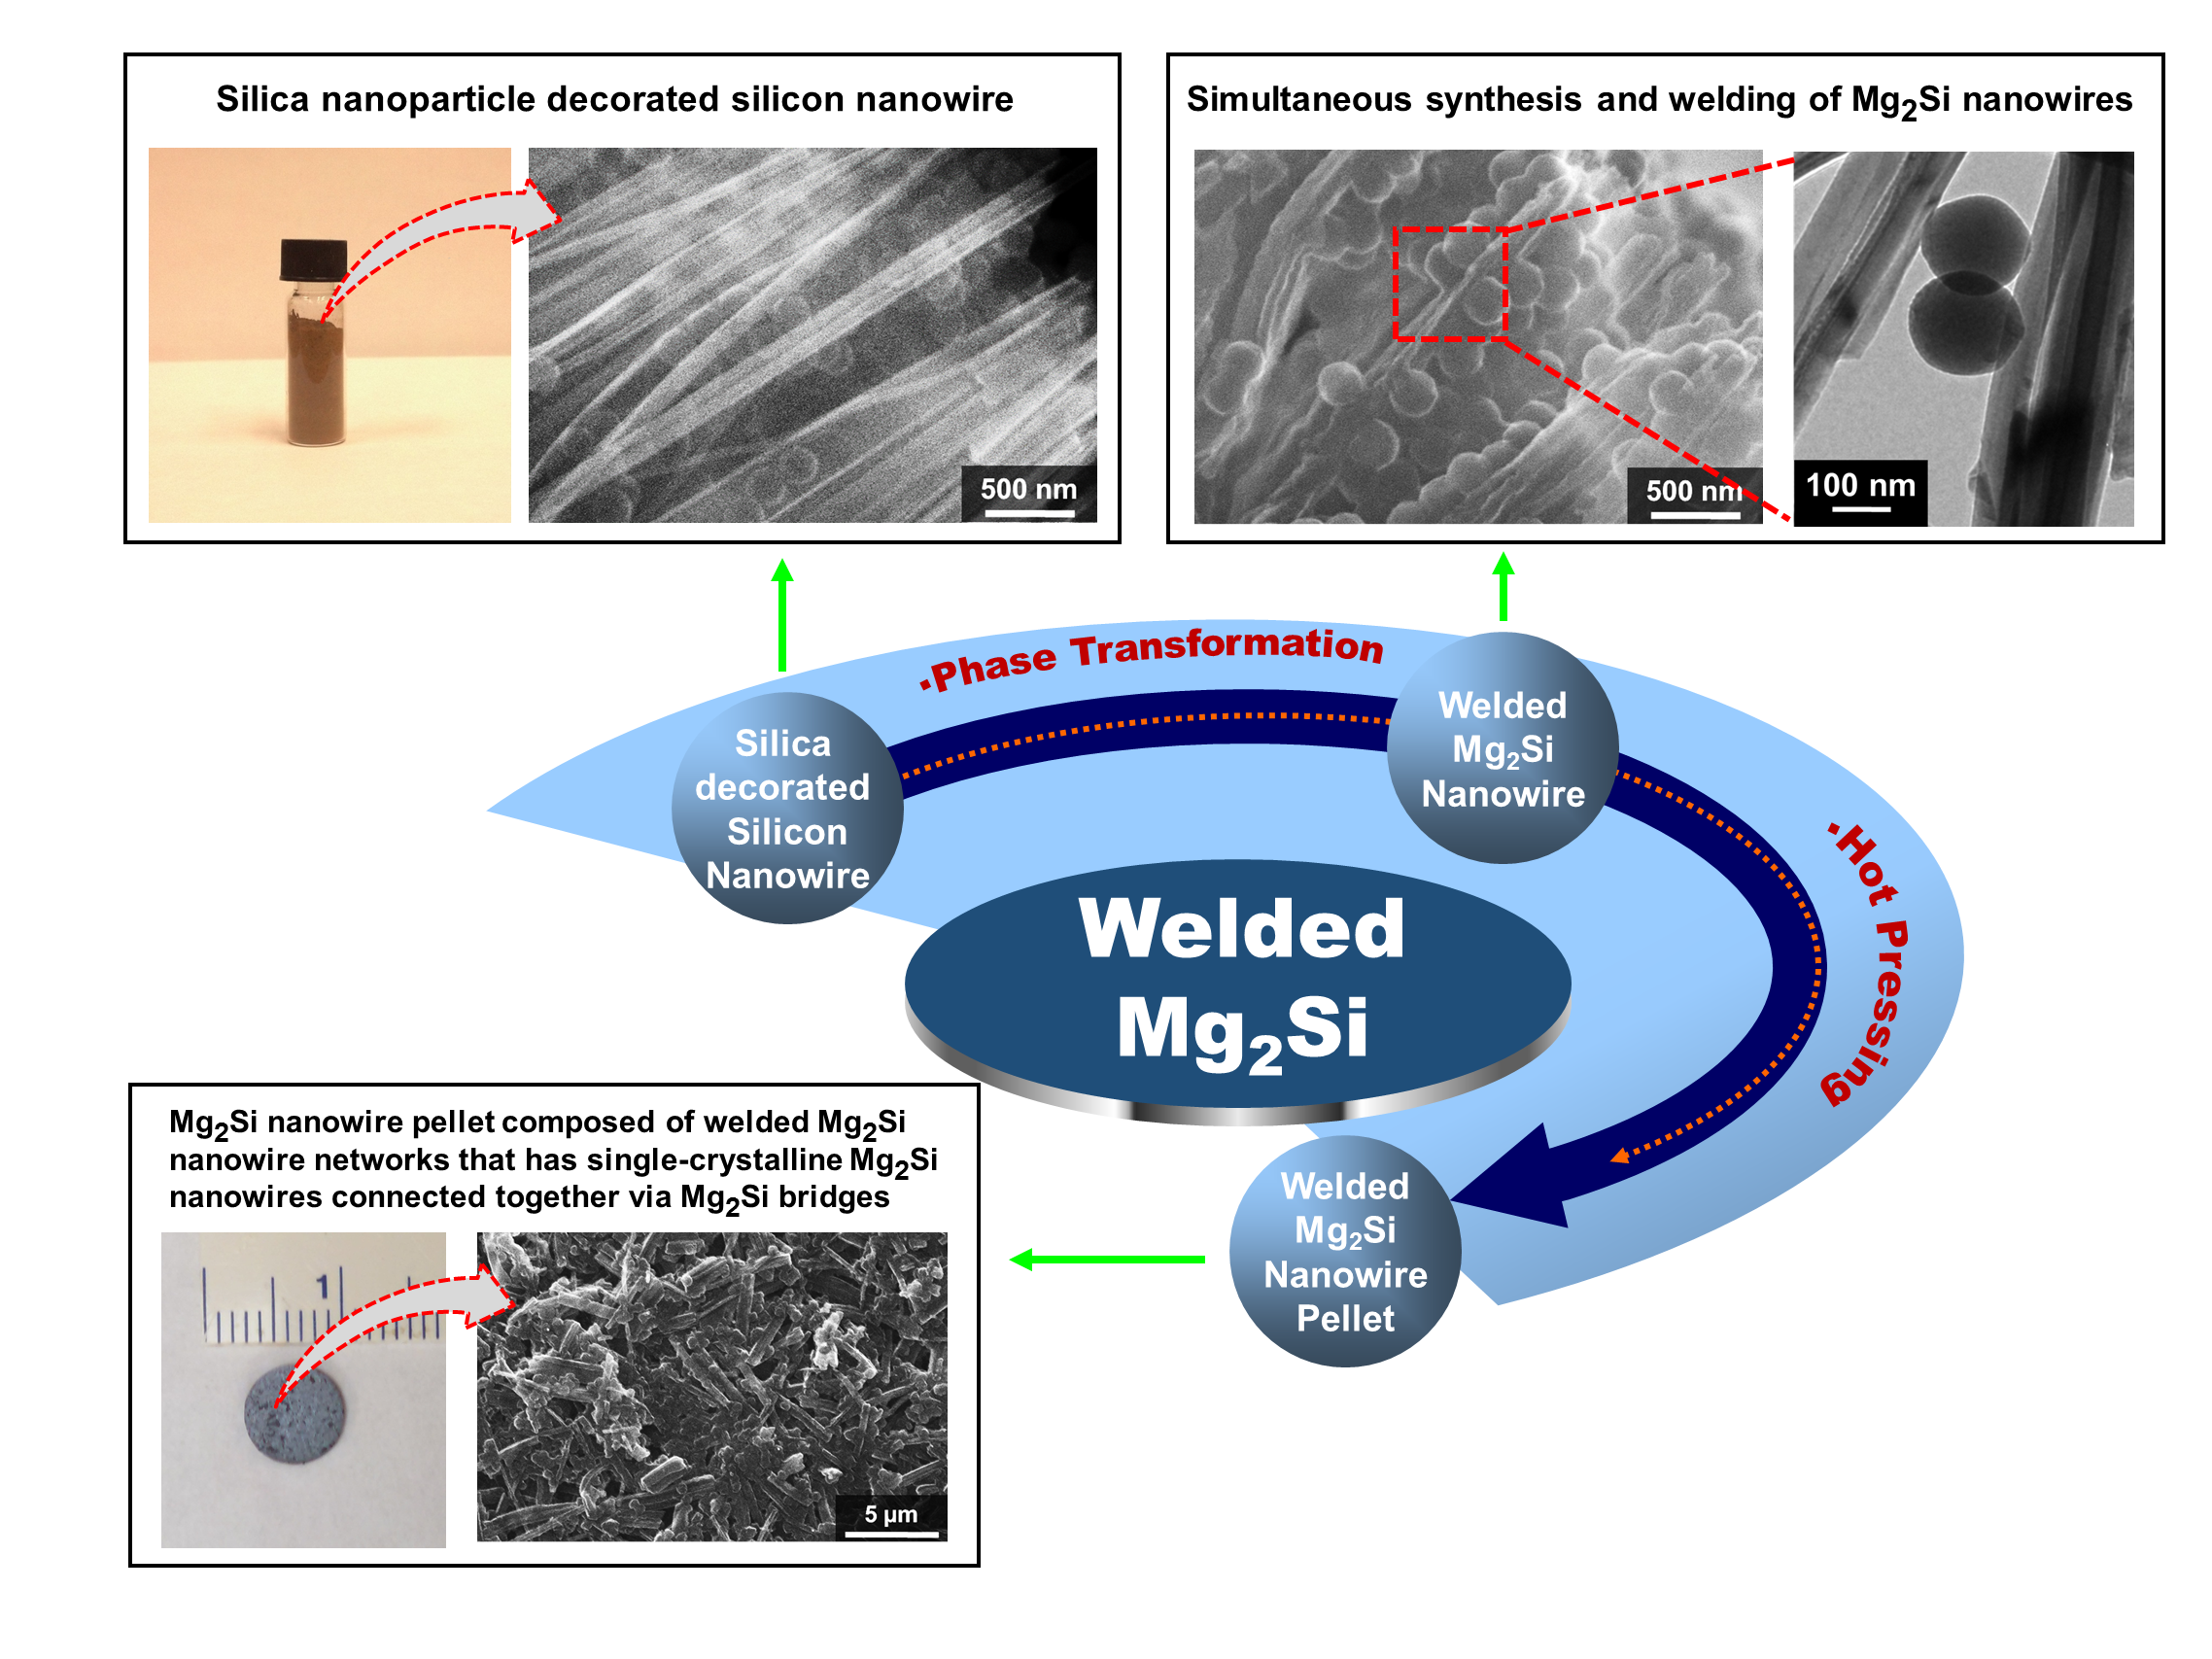 A schematic representing the steps involved in the simultaneous synthesis and welding of single-crystalline Mg2Si nanowires for the formation of Mg2Si nanowire networks.  Chemistry of Materials, 26, 2814, 2014.